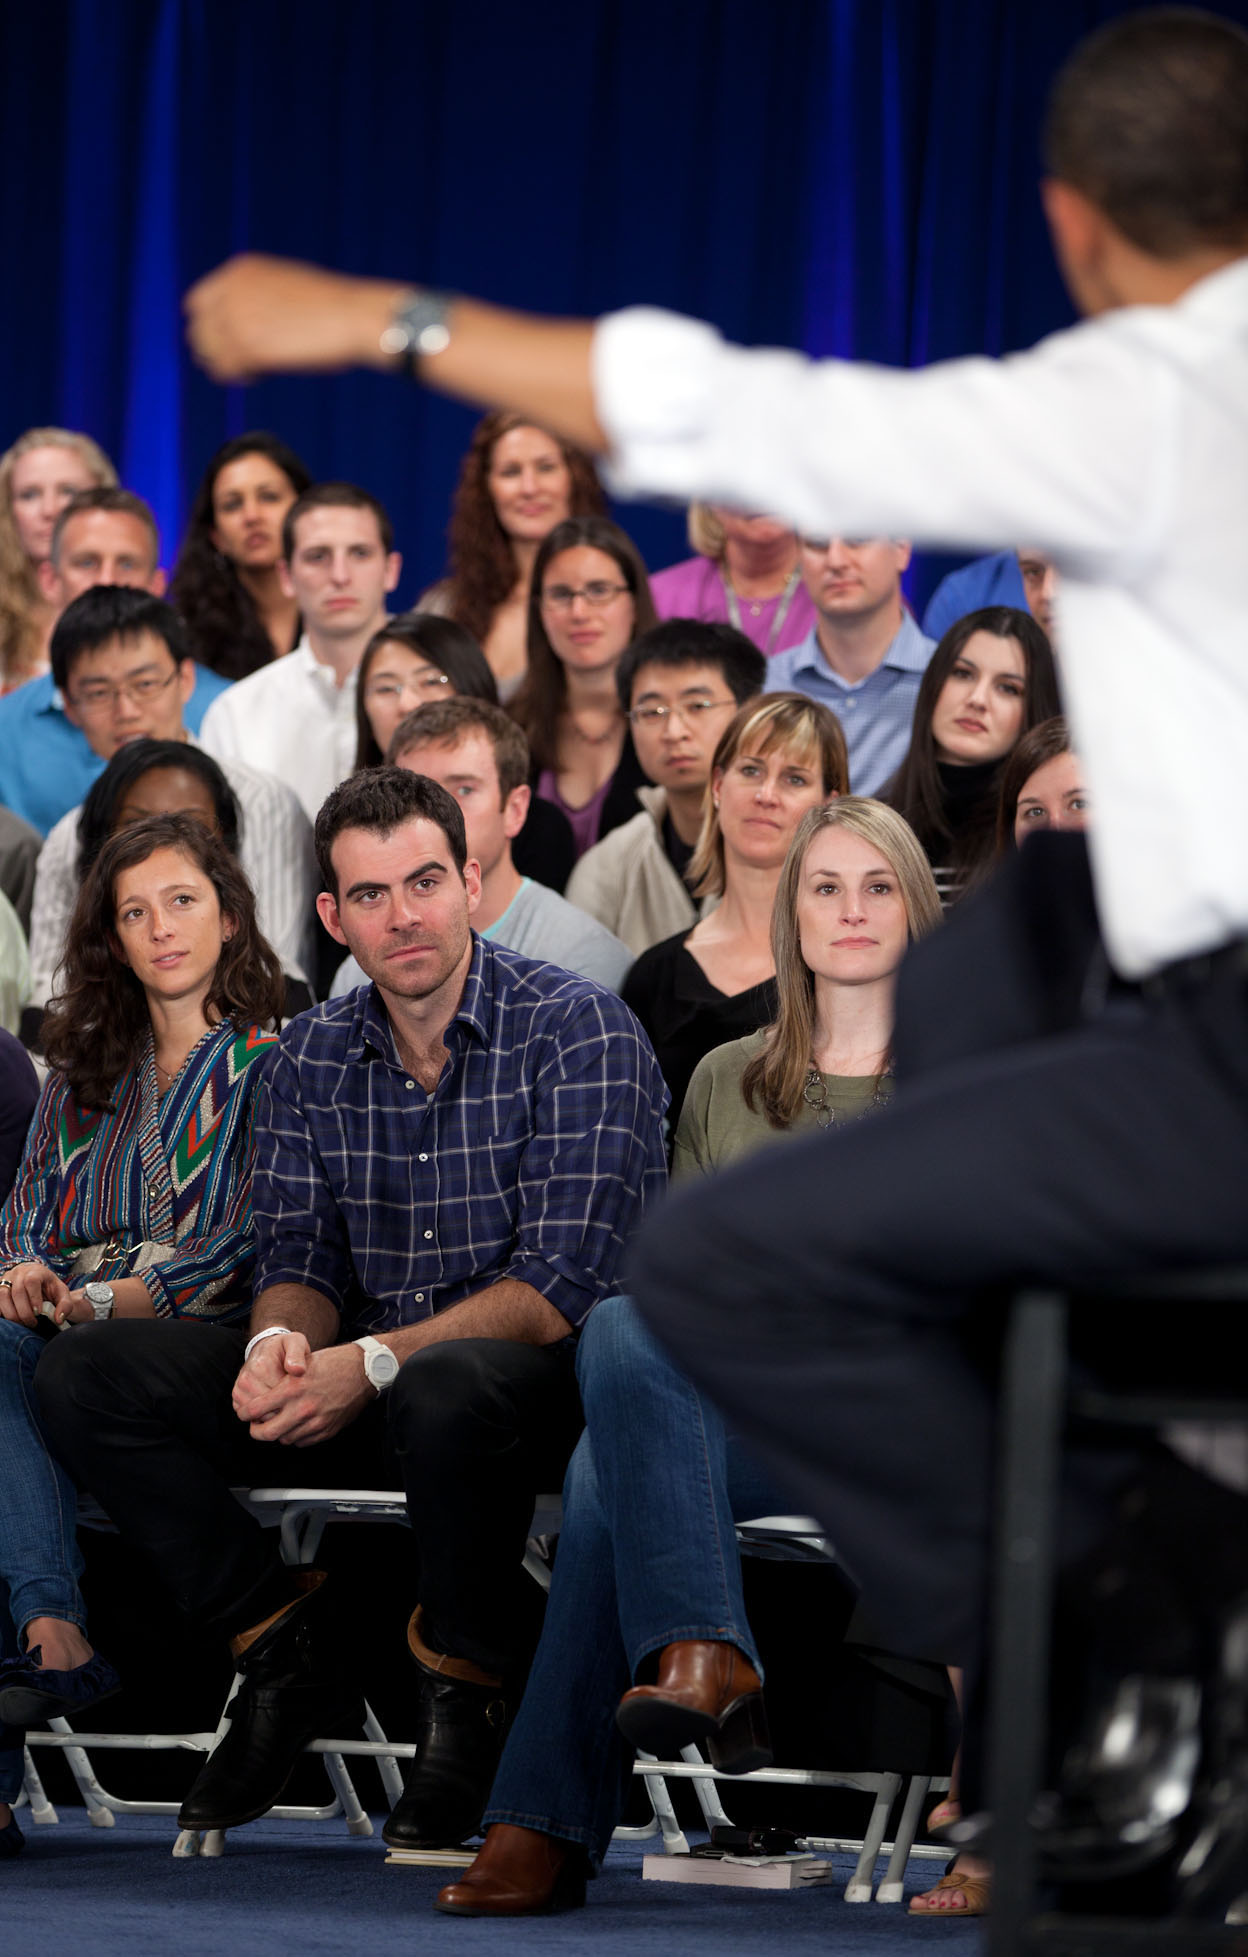 President Obama Answers Questions at Facebook Town Hall